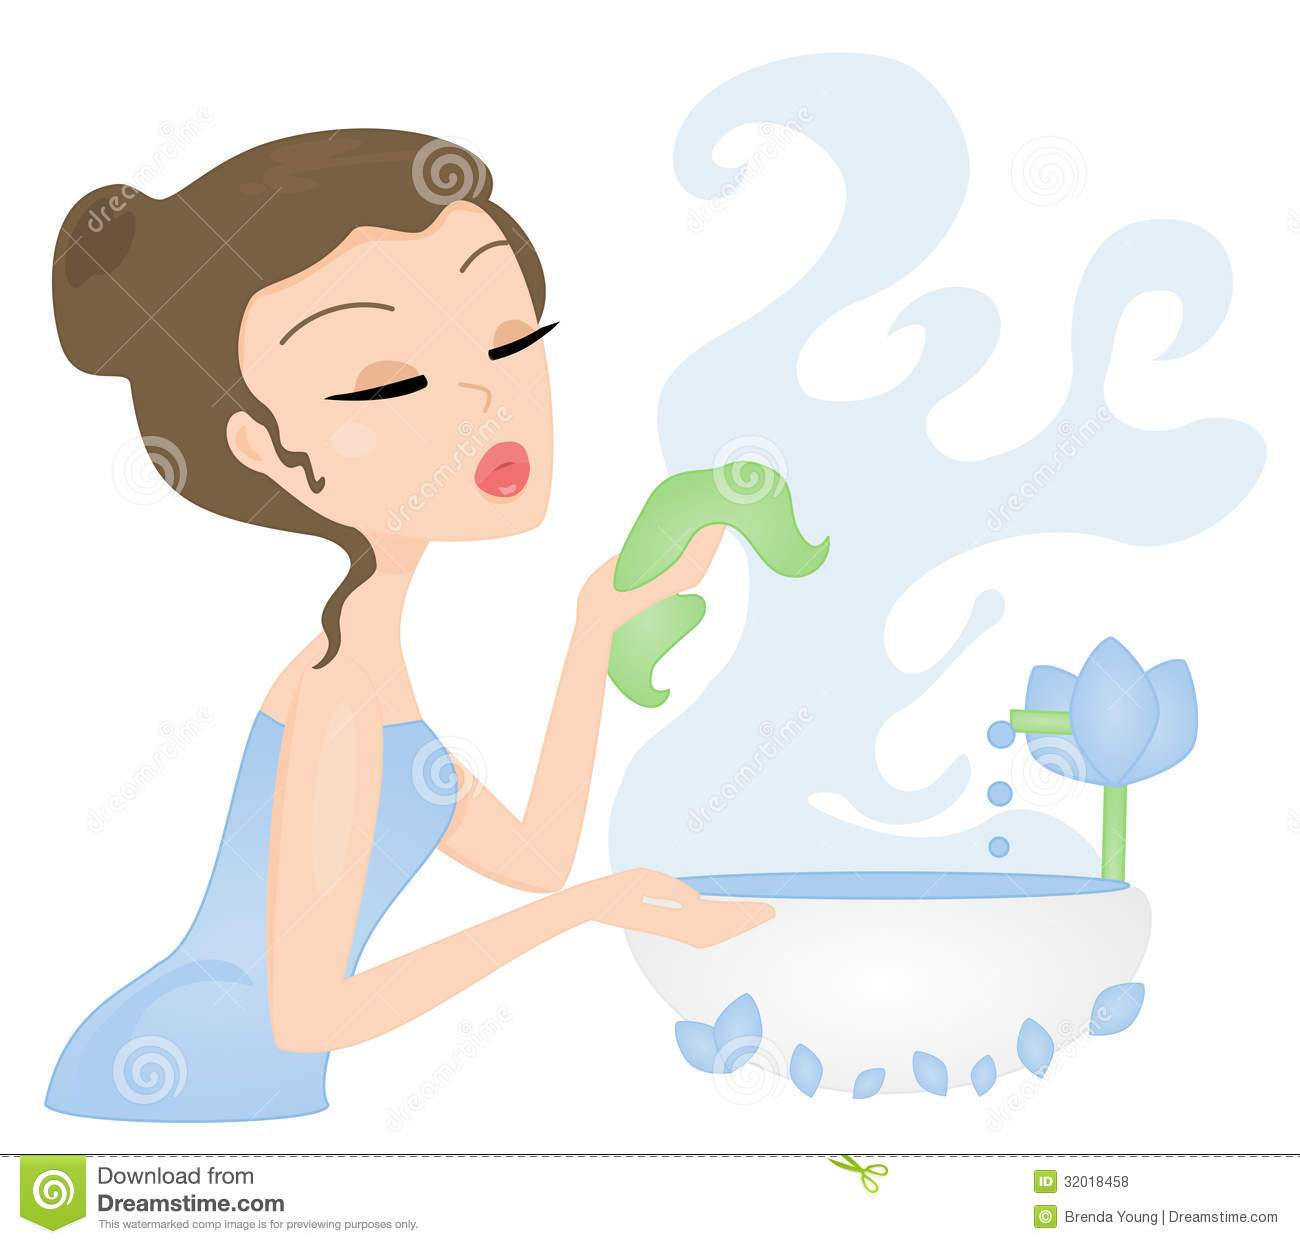 Pamper yourself clipart 5 » Clipart Portal.